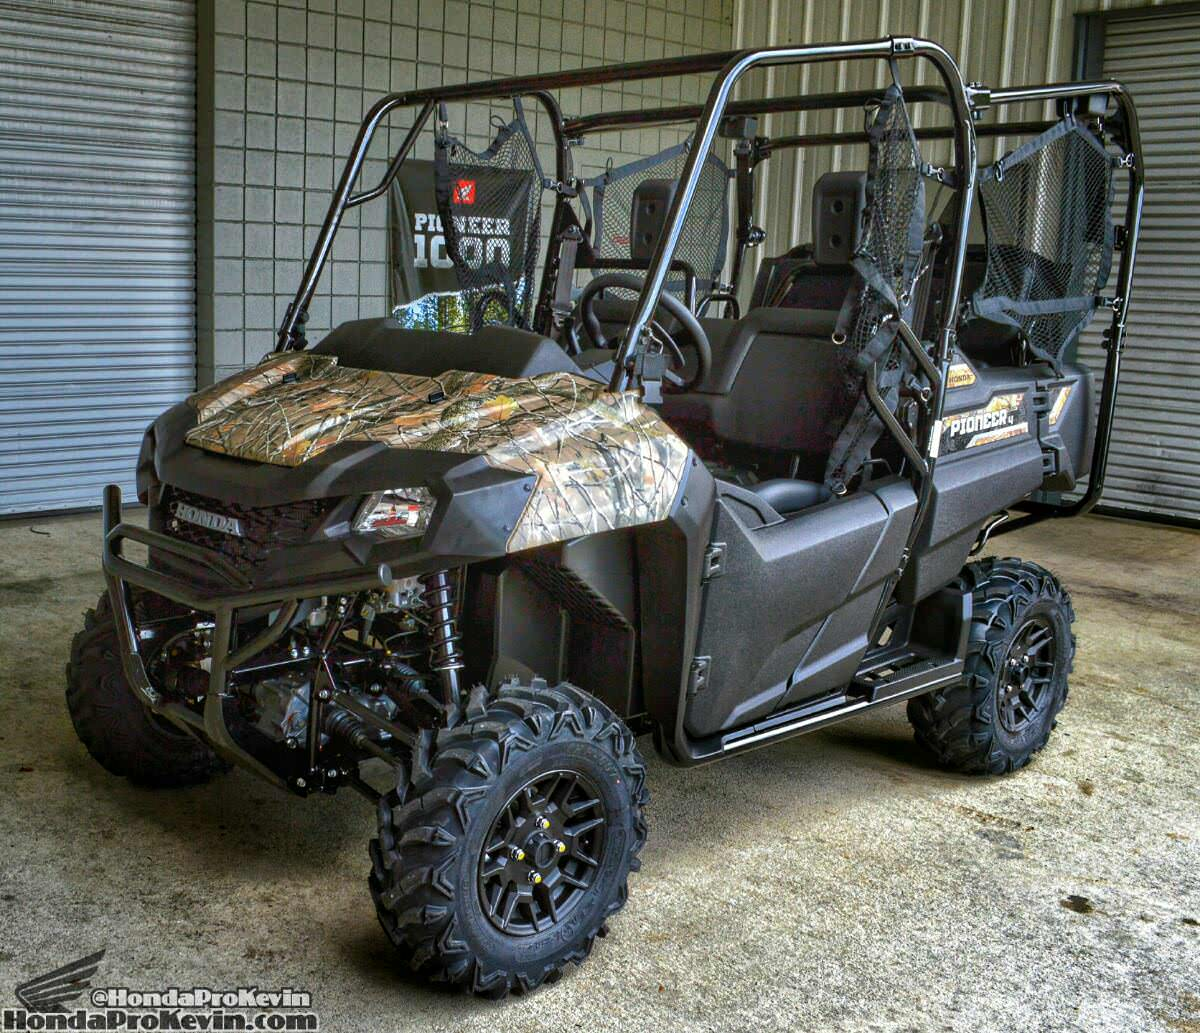 2017 honda pioneer 700-4 camo deluxe review / specs - side by side atv